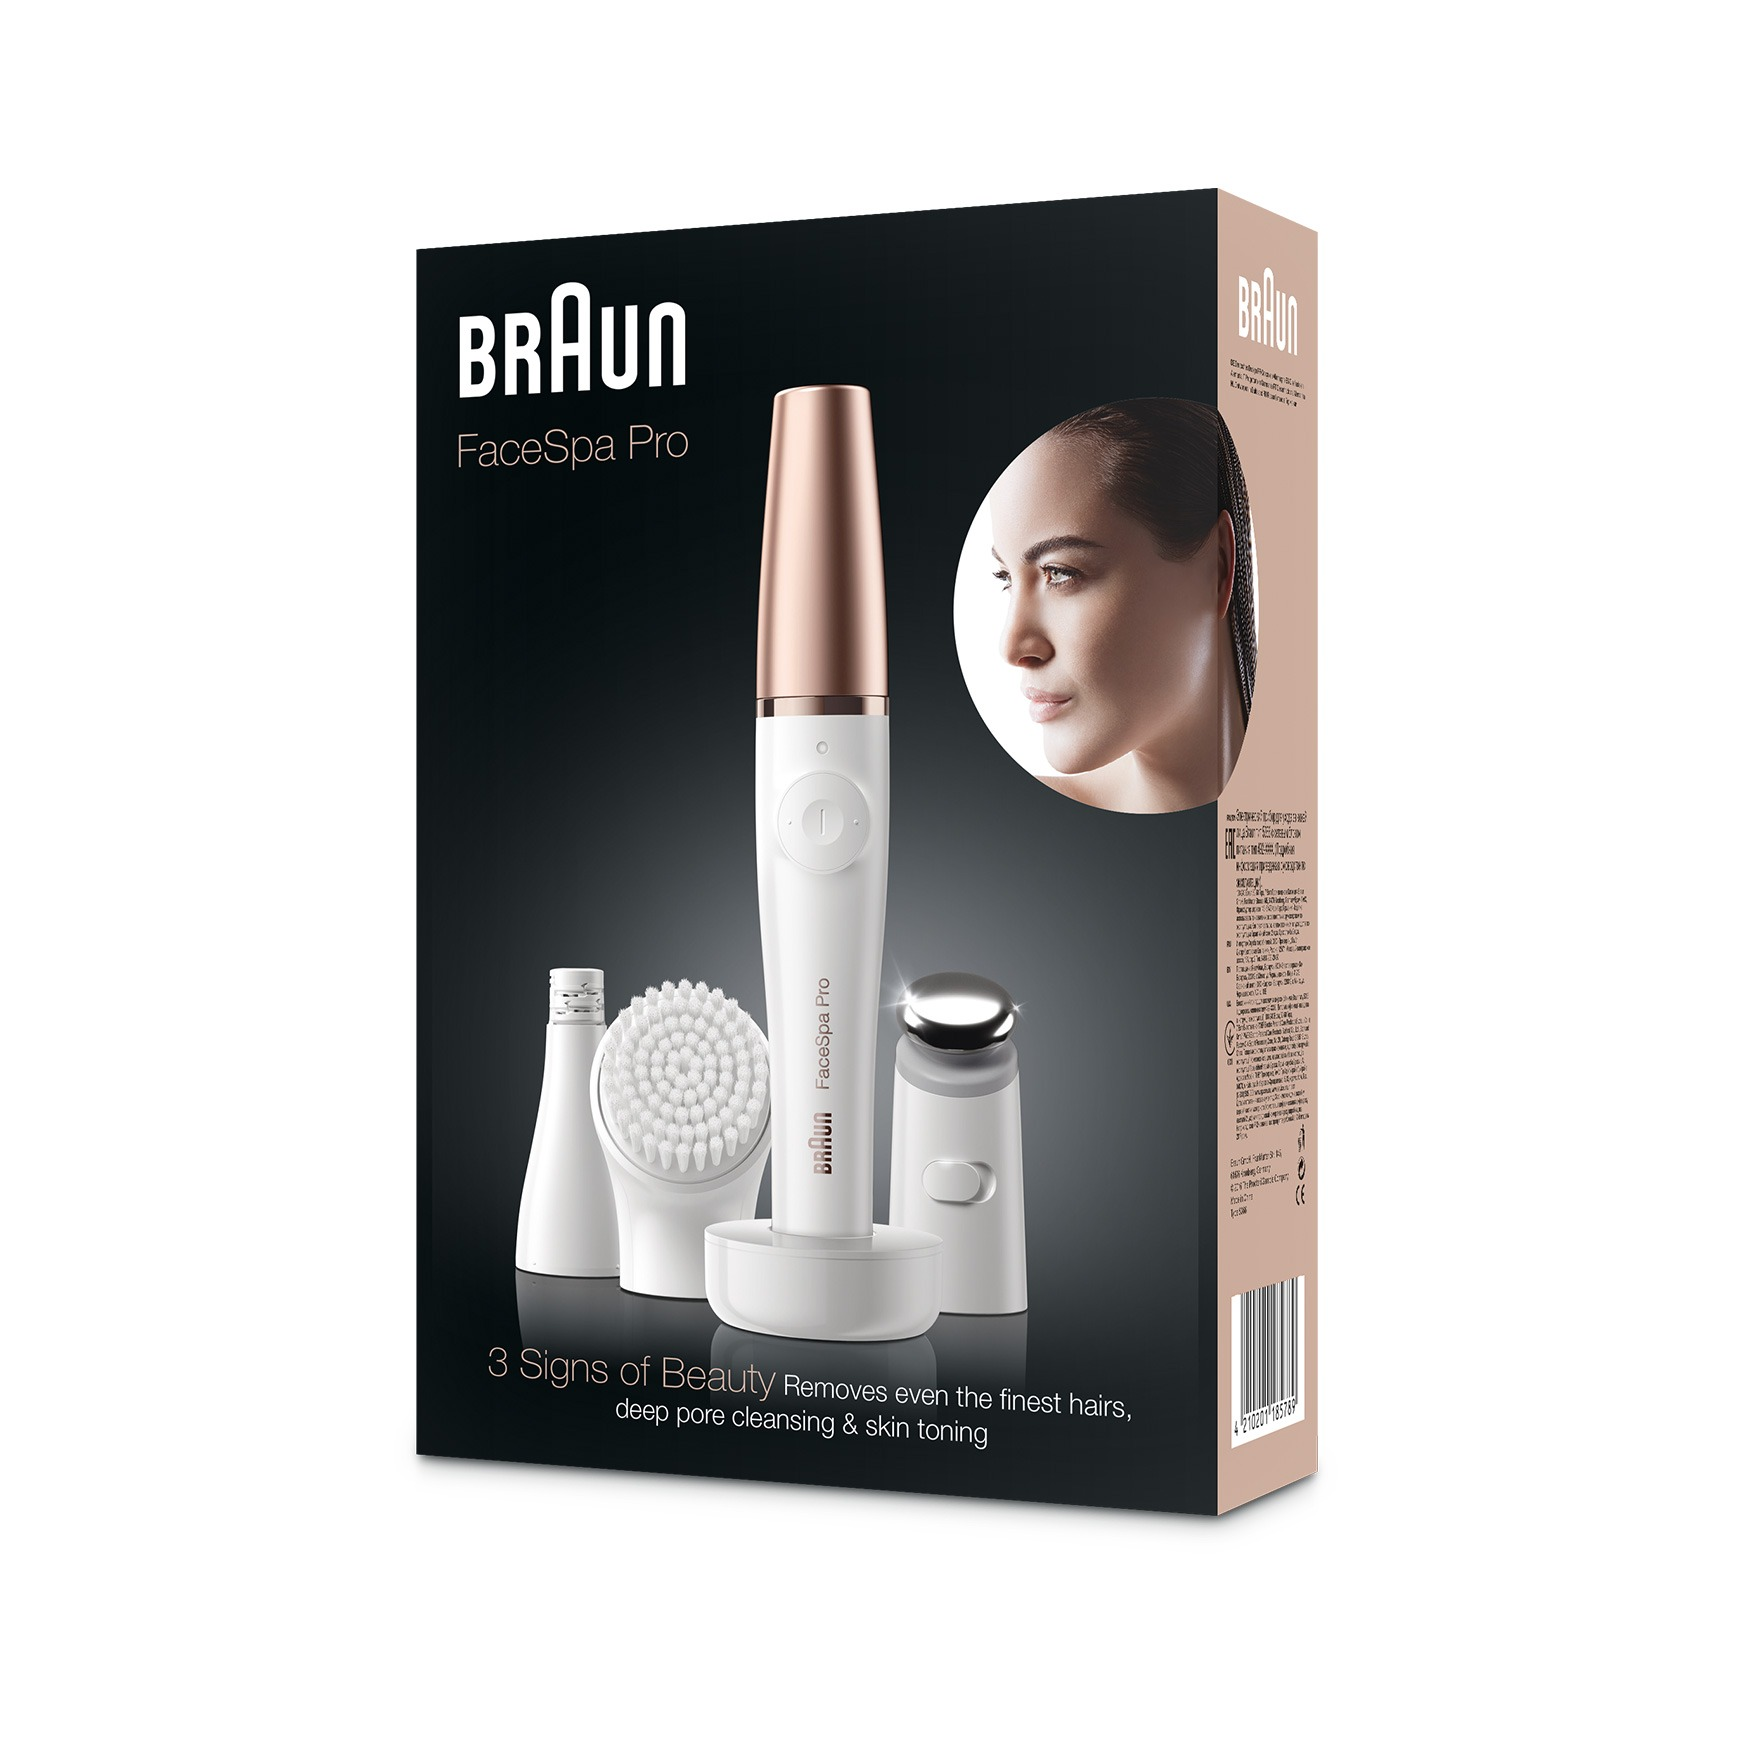 Braun FaceSpa Pro 911 - packaging